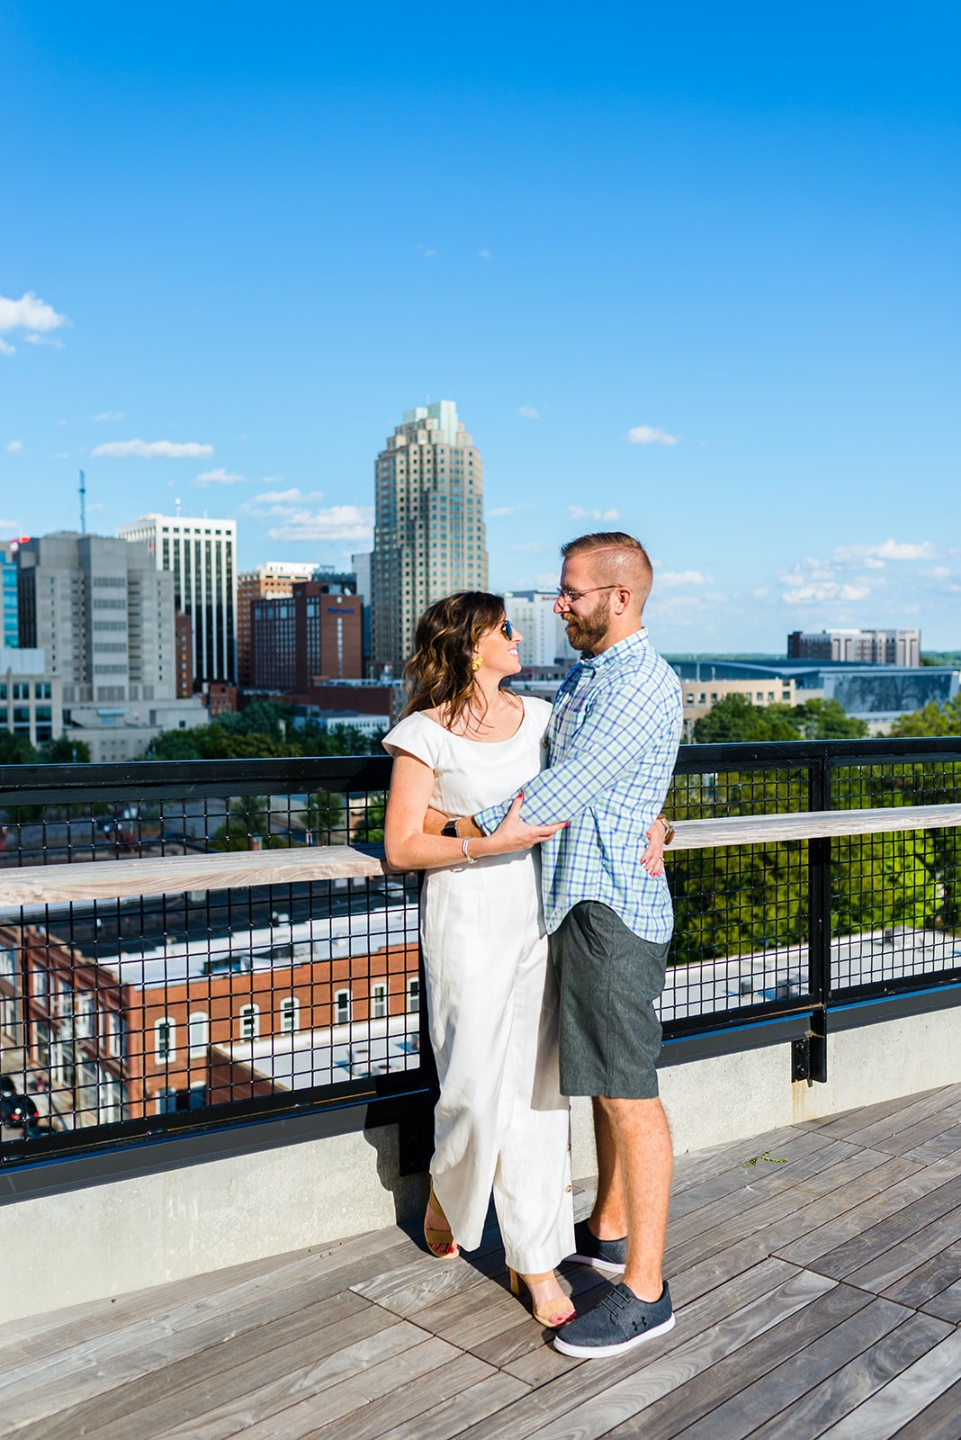 Local Love: 10 Best Places to Photograph in North Carolina - I'm Fixin' To - @mbg0112 | Best Places to Photography in North Carolina by popular N.C. lifestyle blog, I'm Fixin' To: image of a woman wearing a white jumpsuit and standing in the arms of her husband on The Rooftop at the Dillon in Raleigh, N.C.